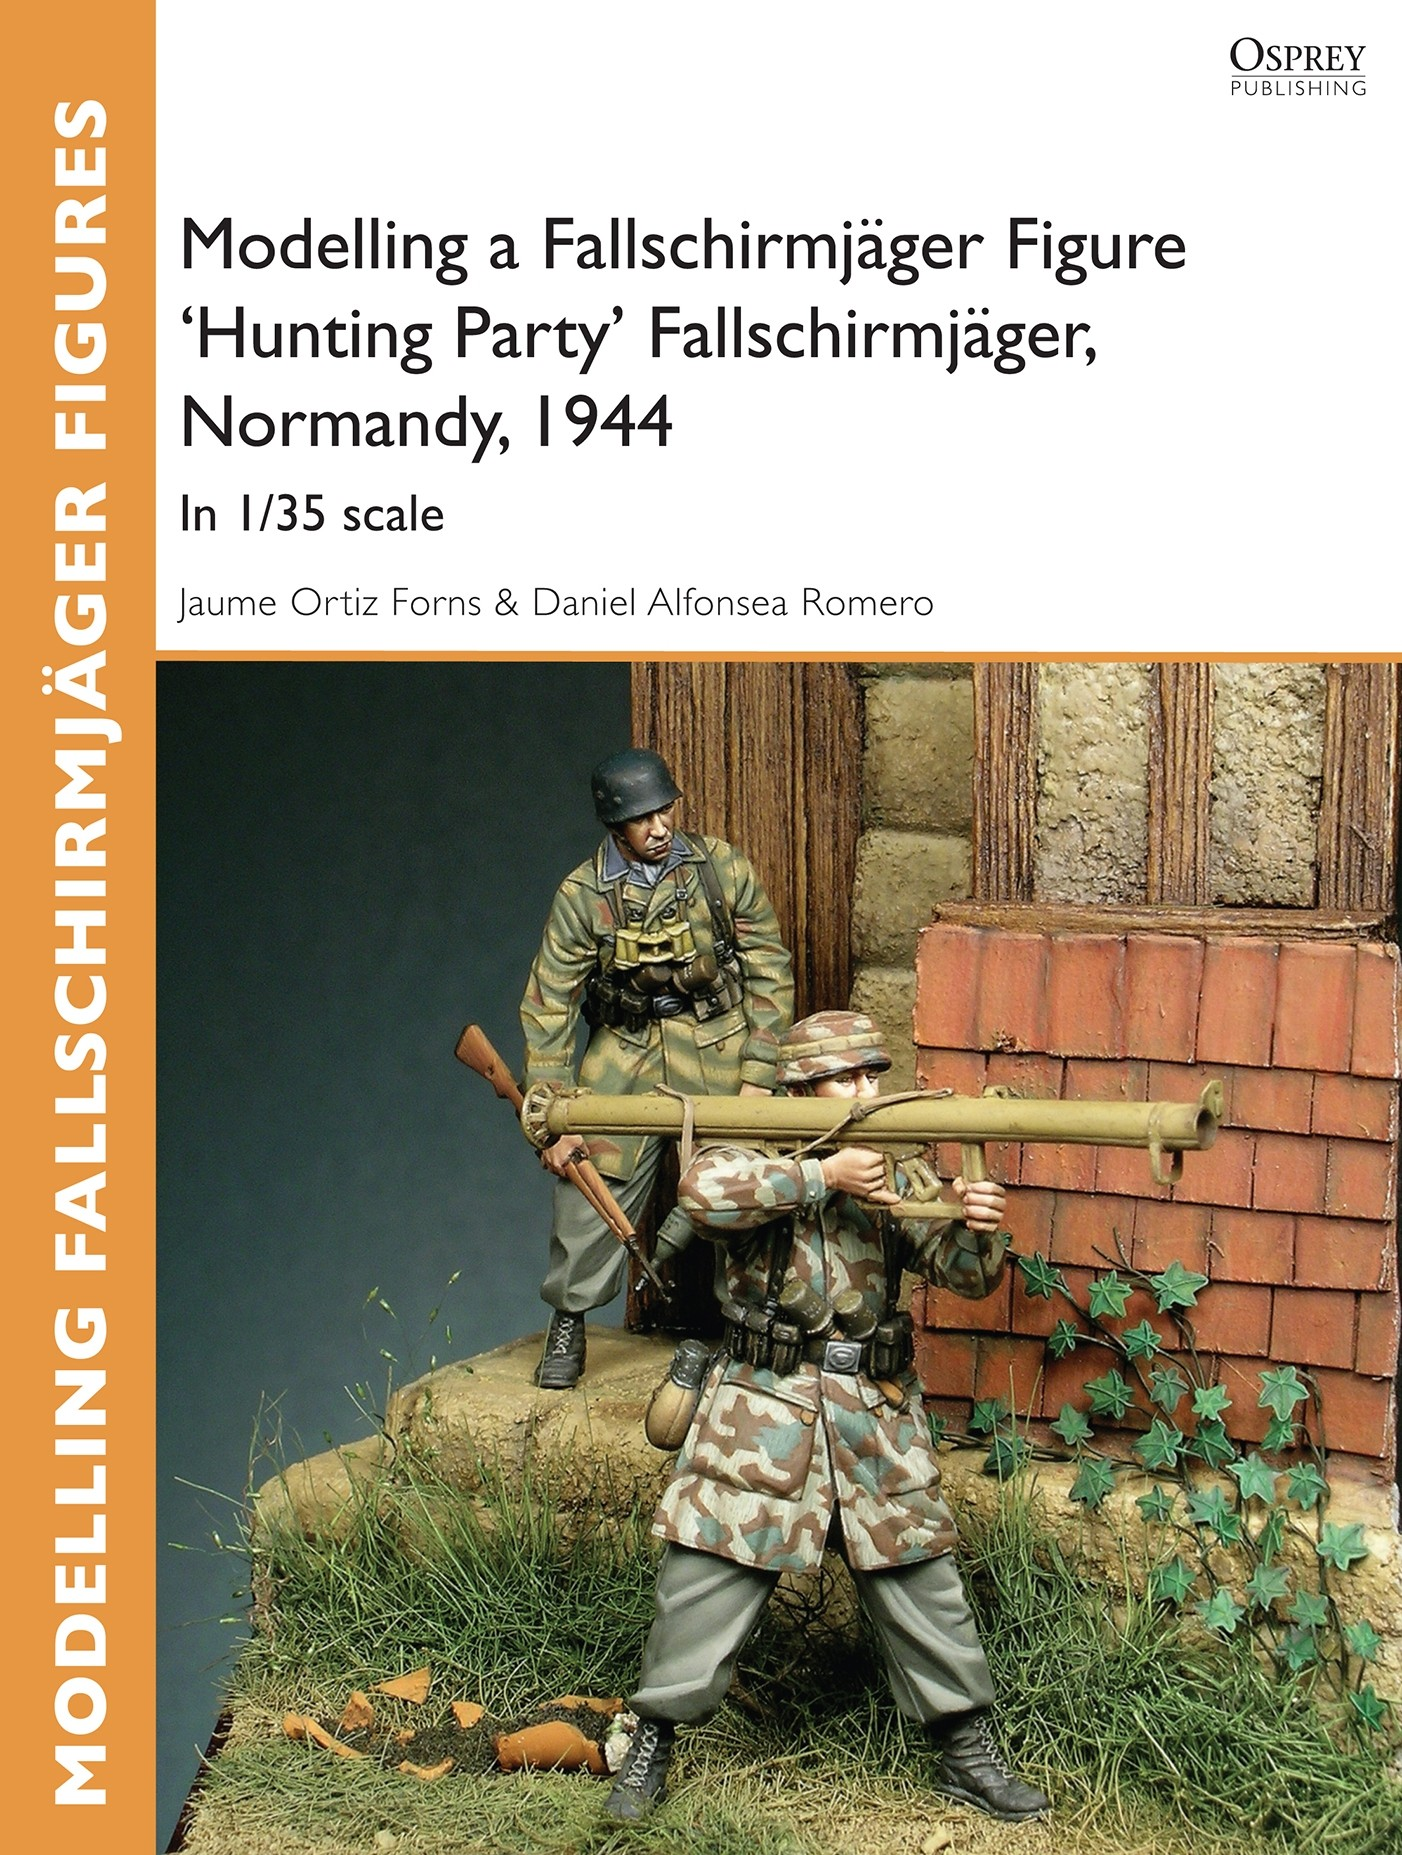 Modelling a Fallschirmjäger Figure 'Hunting Party' Fallschirmjäger, Normandy, 1944